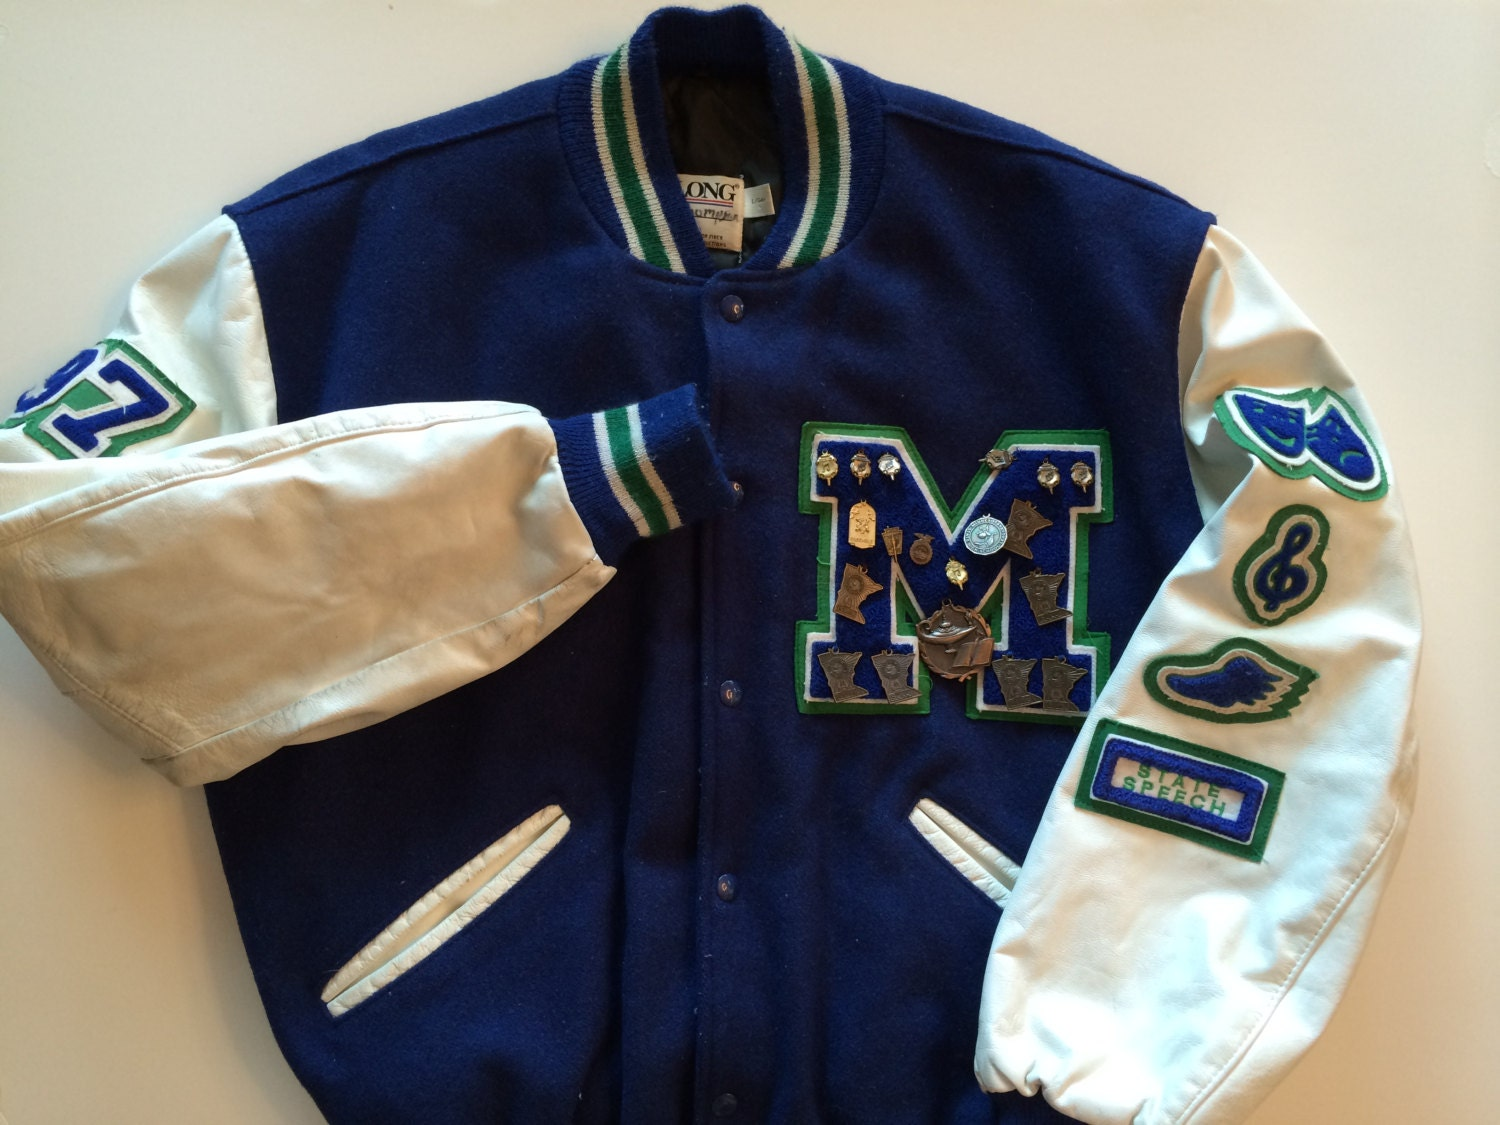 varsity letter jacket amazing school jacket in blue green With varsity letter jacket pins